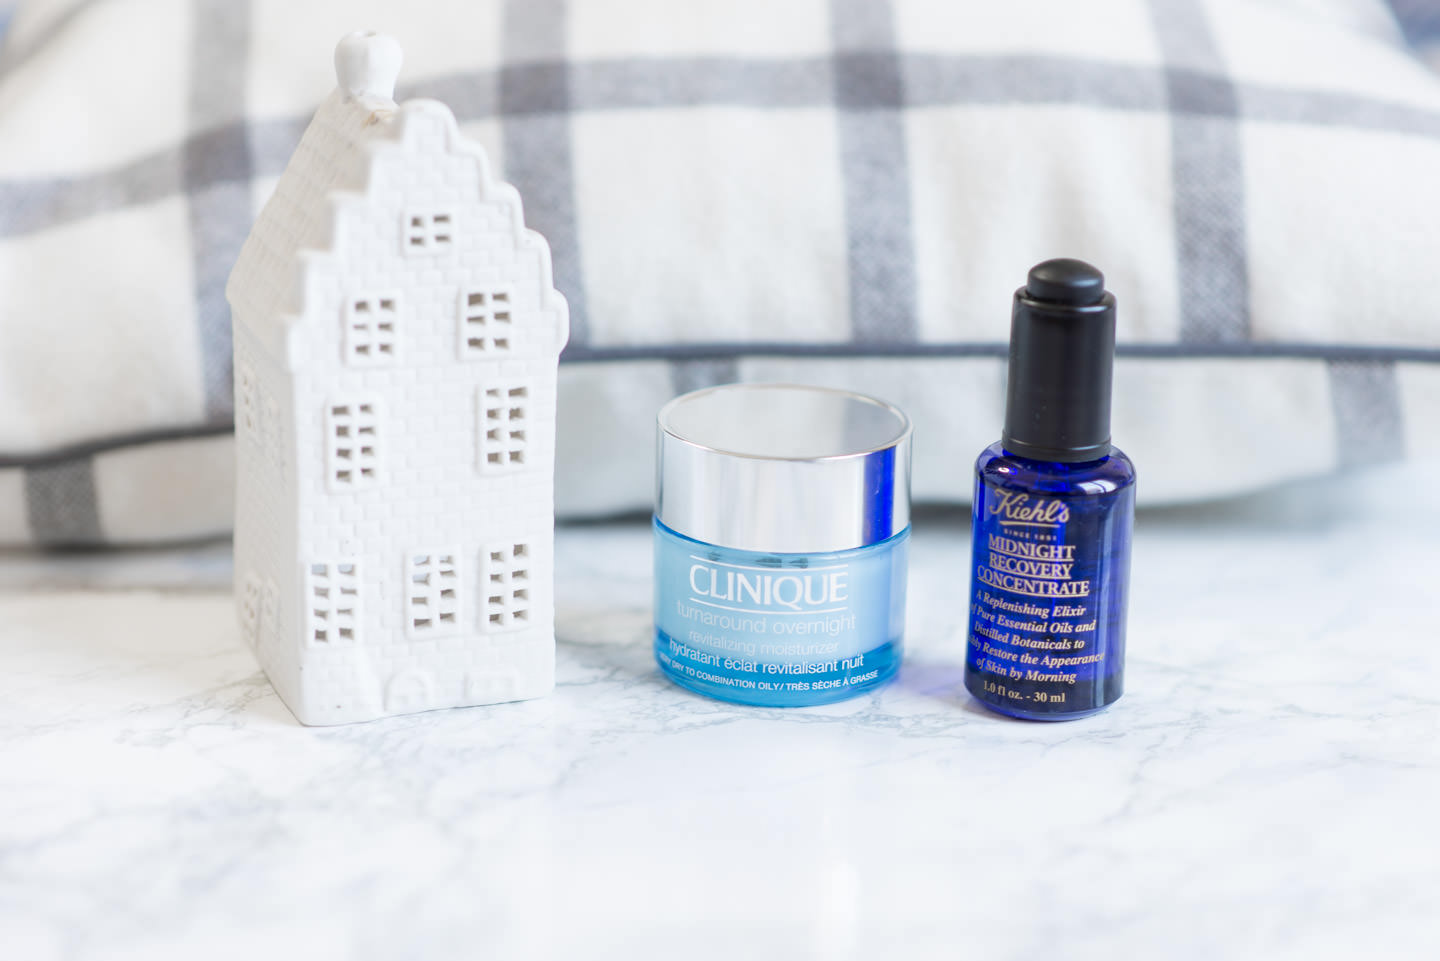 Blog-Mode-and-The-City-Beauté-Favoris-Clinique-nuit-Kiehls